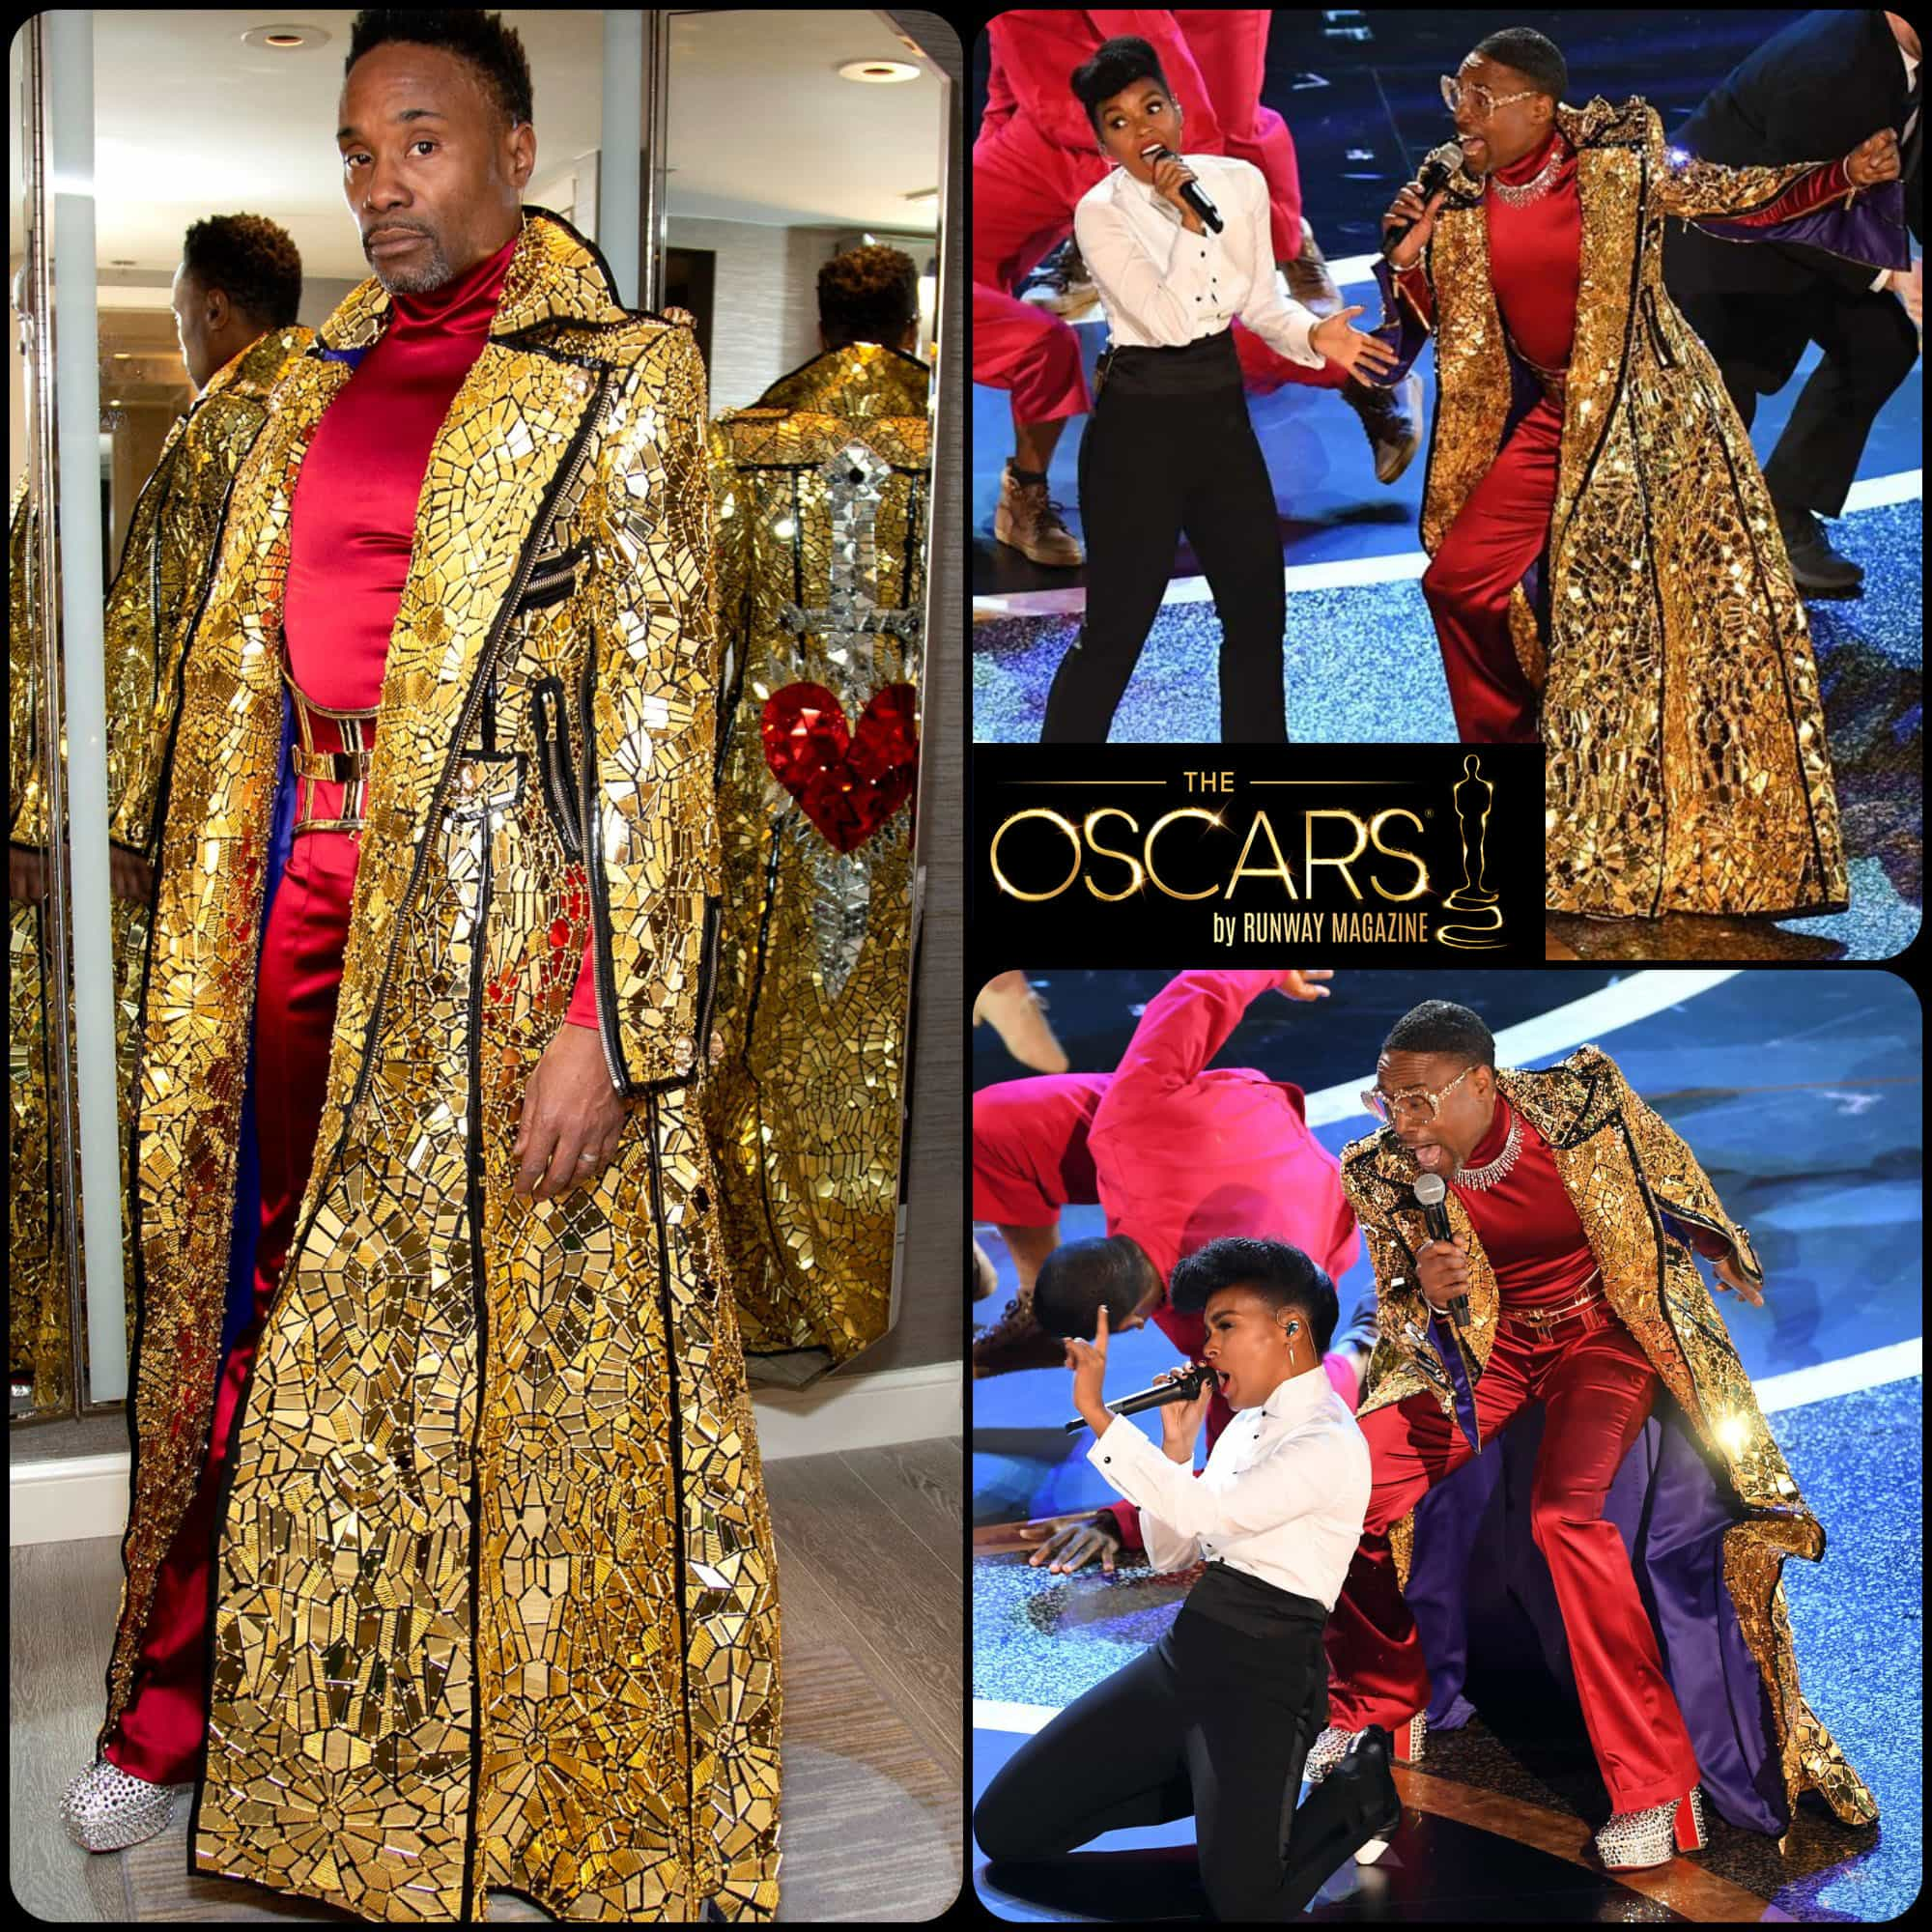 Oscars 2020 Billy Porter, golden coat by THE BLONDS by RUNWAY MAGAZINE